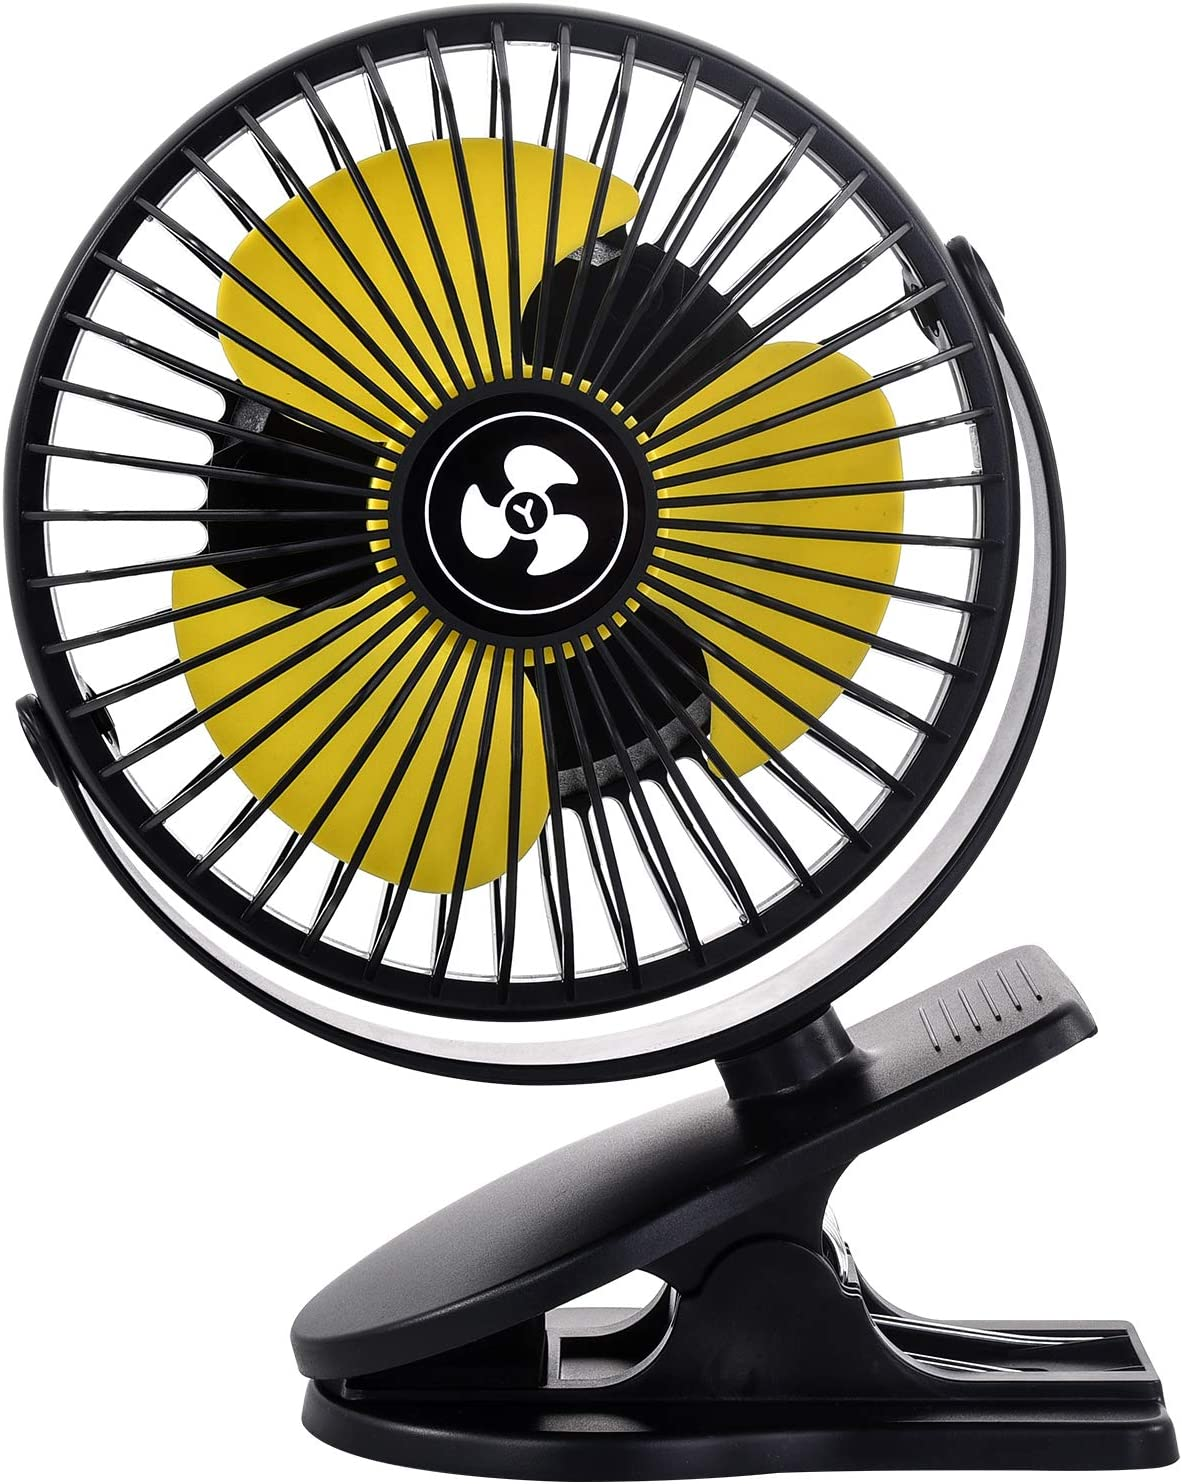 Quiet 10000mAH Rechargeable Battery Powered Clip on Fan, 3 Speed 360 Degree Rotation, Personal Portable USB Desk Fan for Baby Stroller/Car Seat/Office/Camping Tent